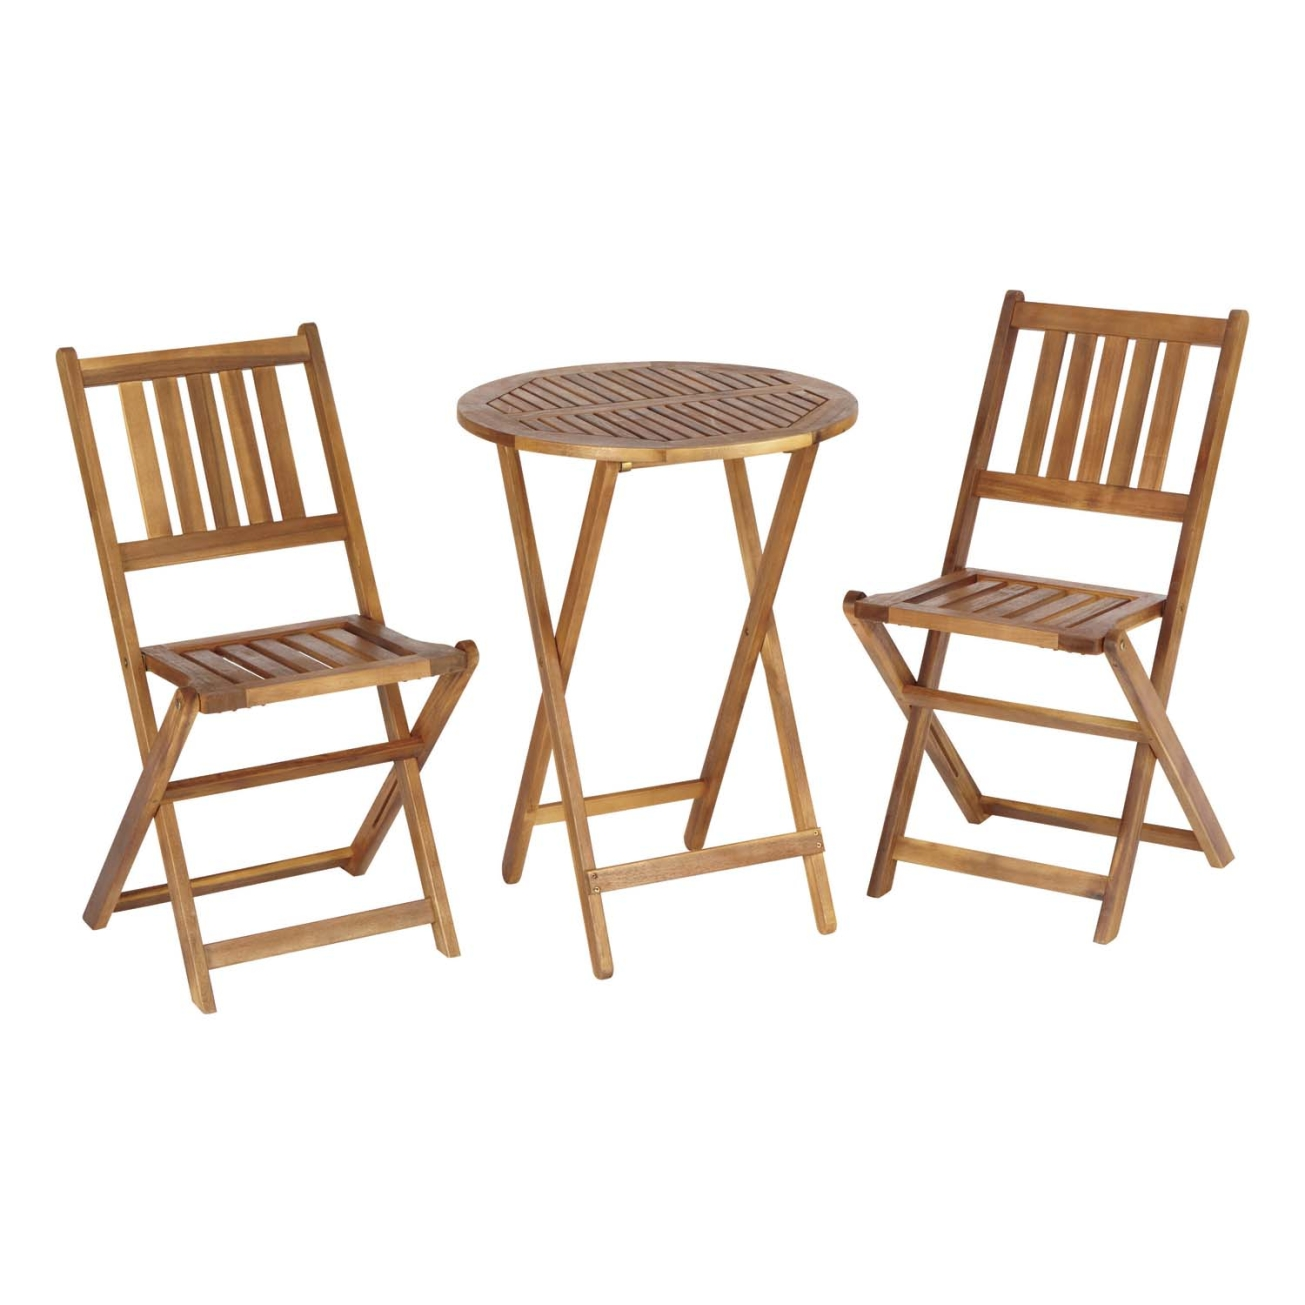 Ikea Round Table And Chairs: Get A Nice Spot In Your Garden Or Patio By Decorating An